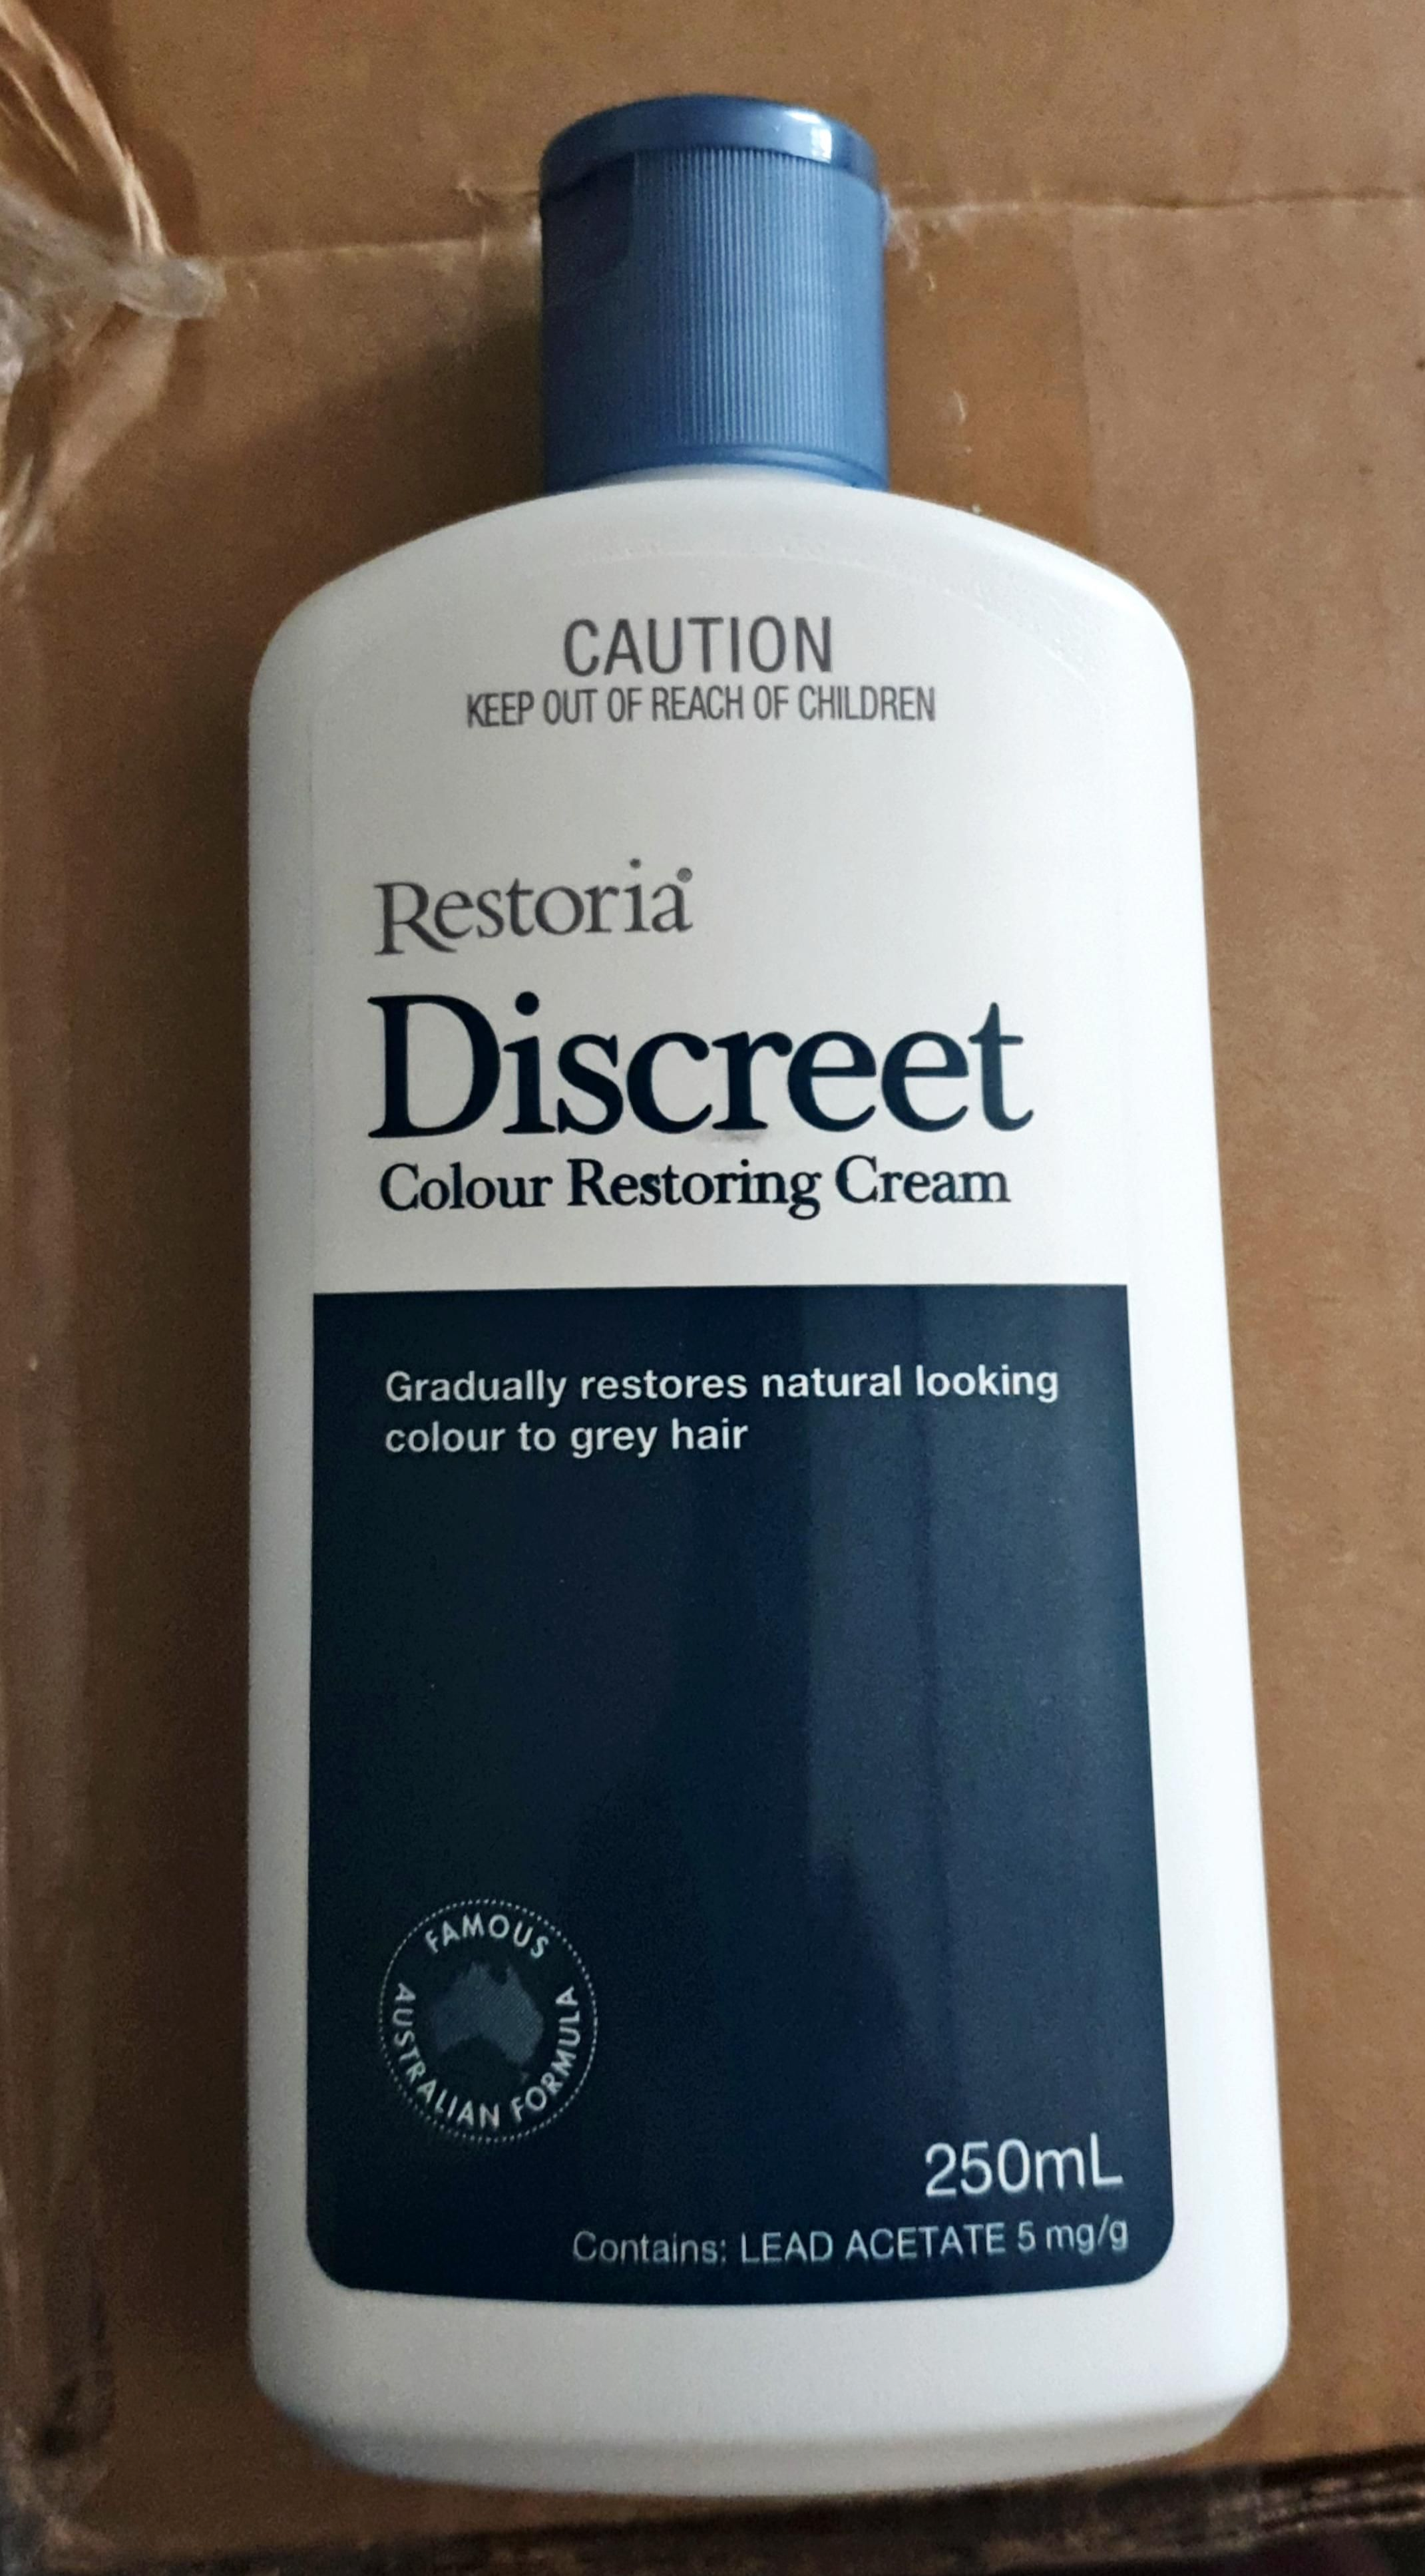 Restoria Discreet color restoring cream